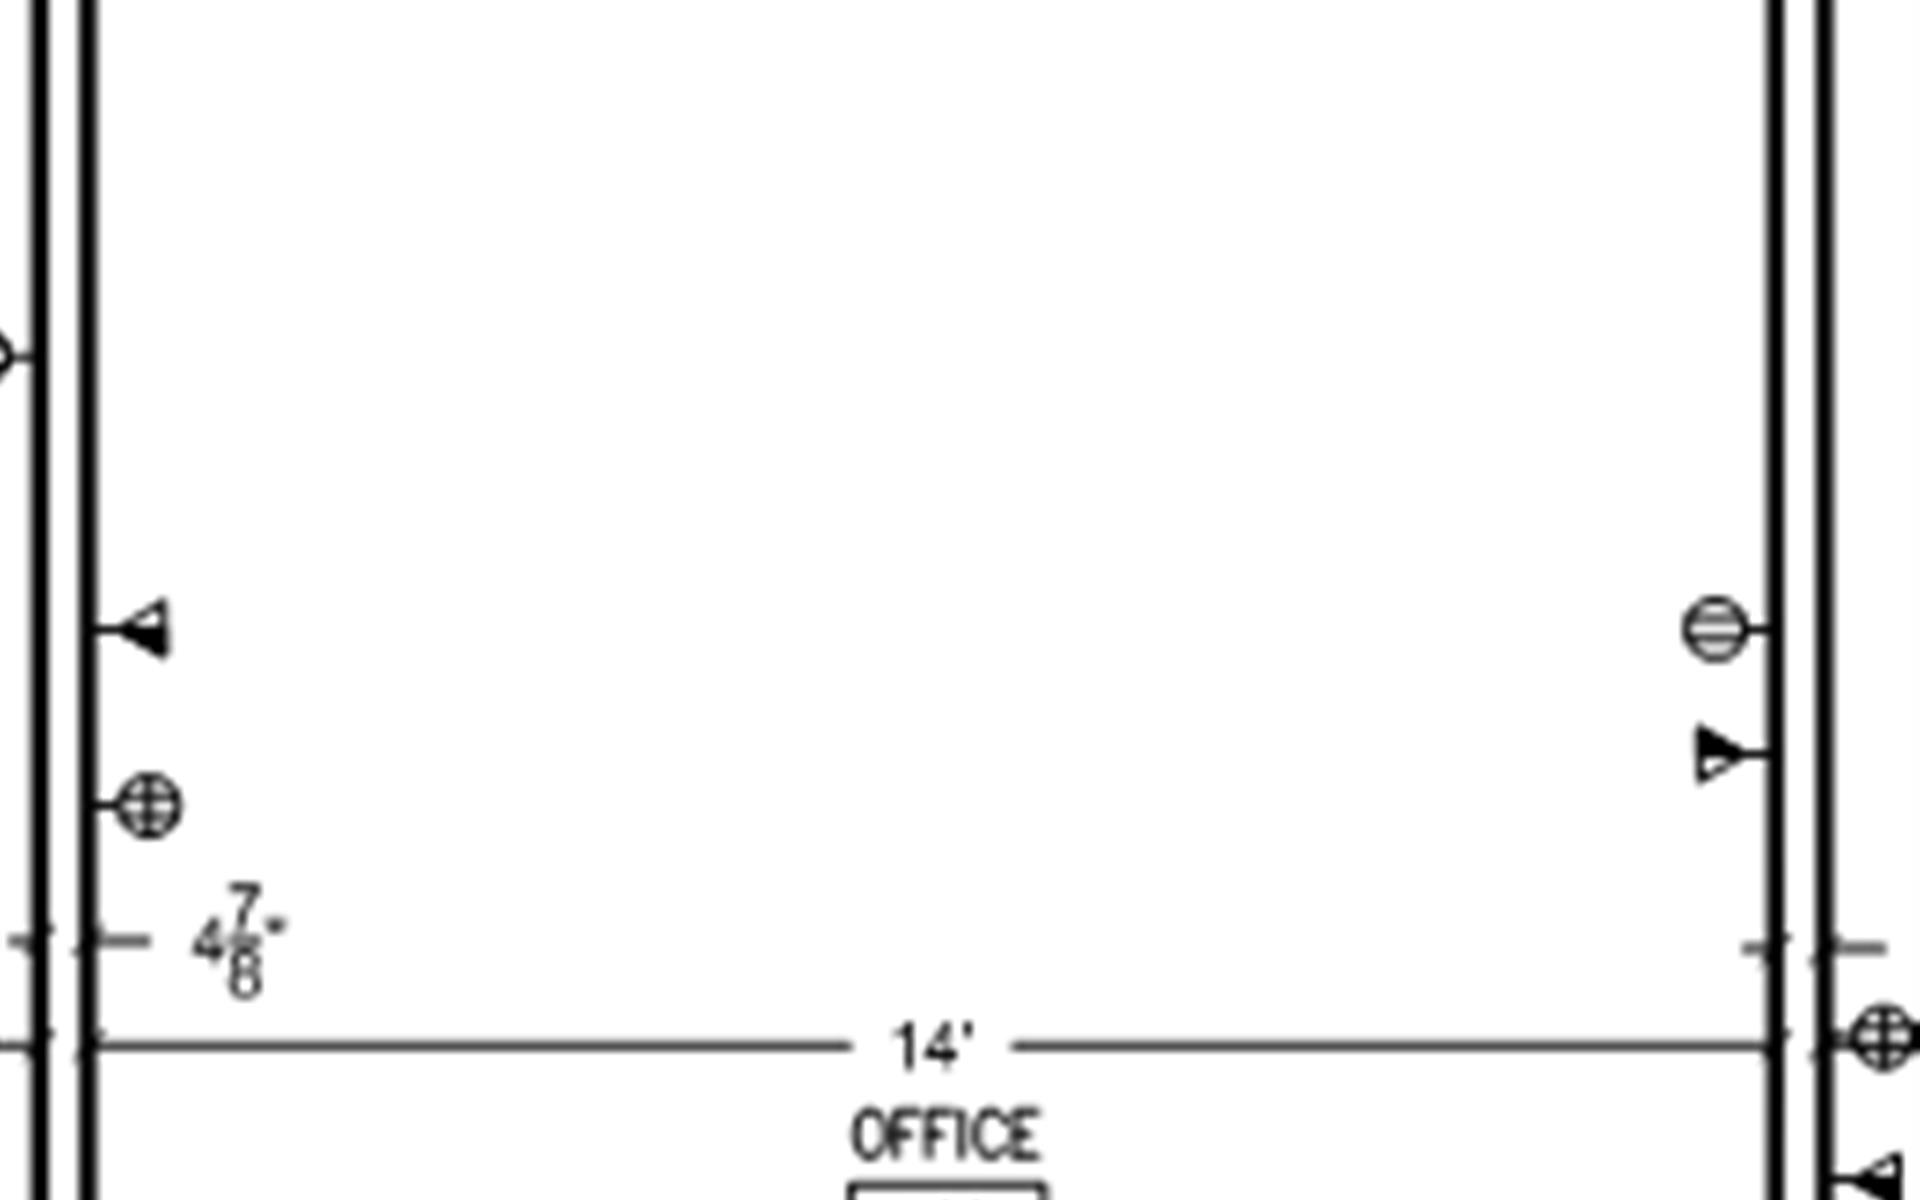 ACF Executive Suites - Office 1